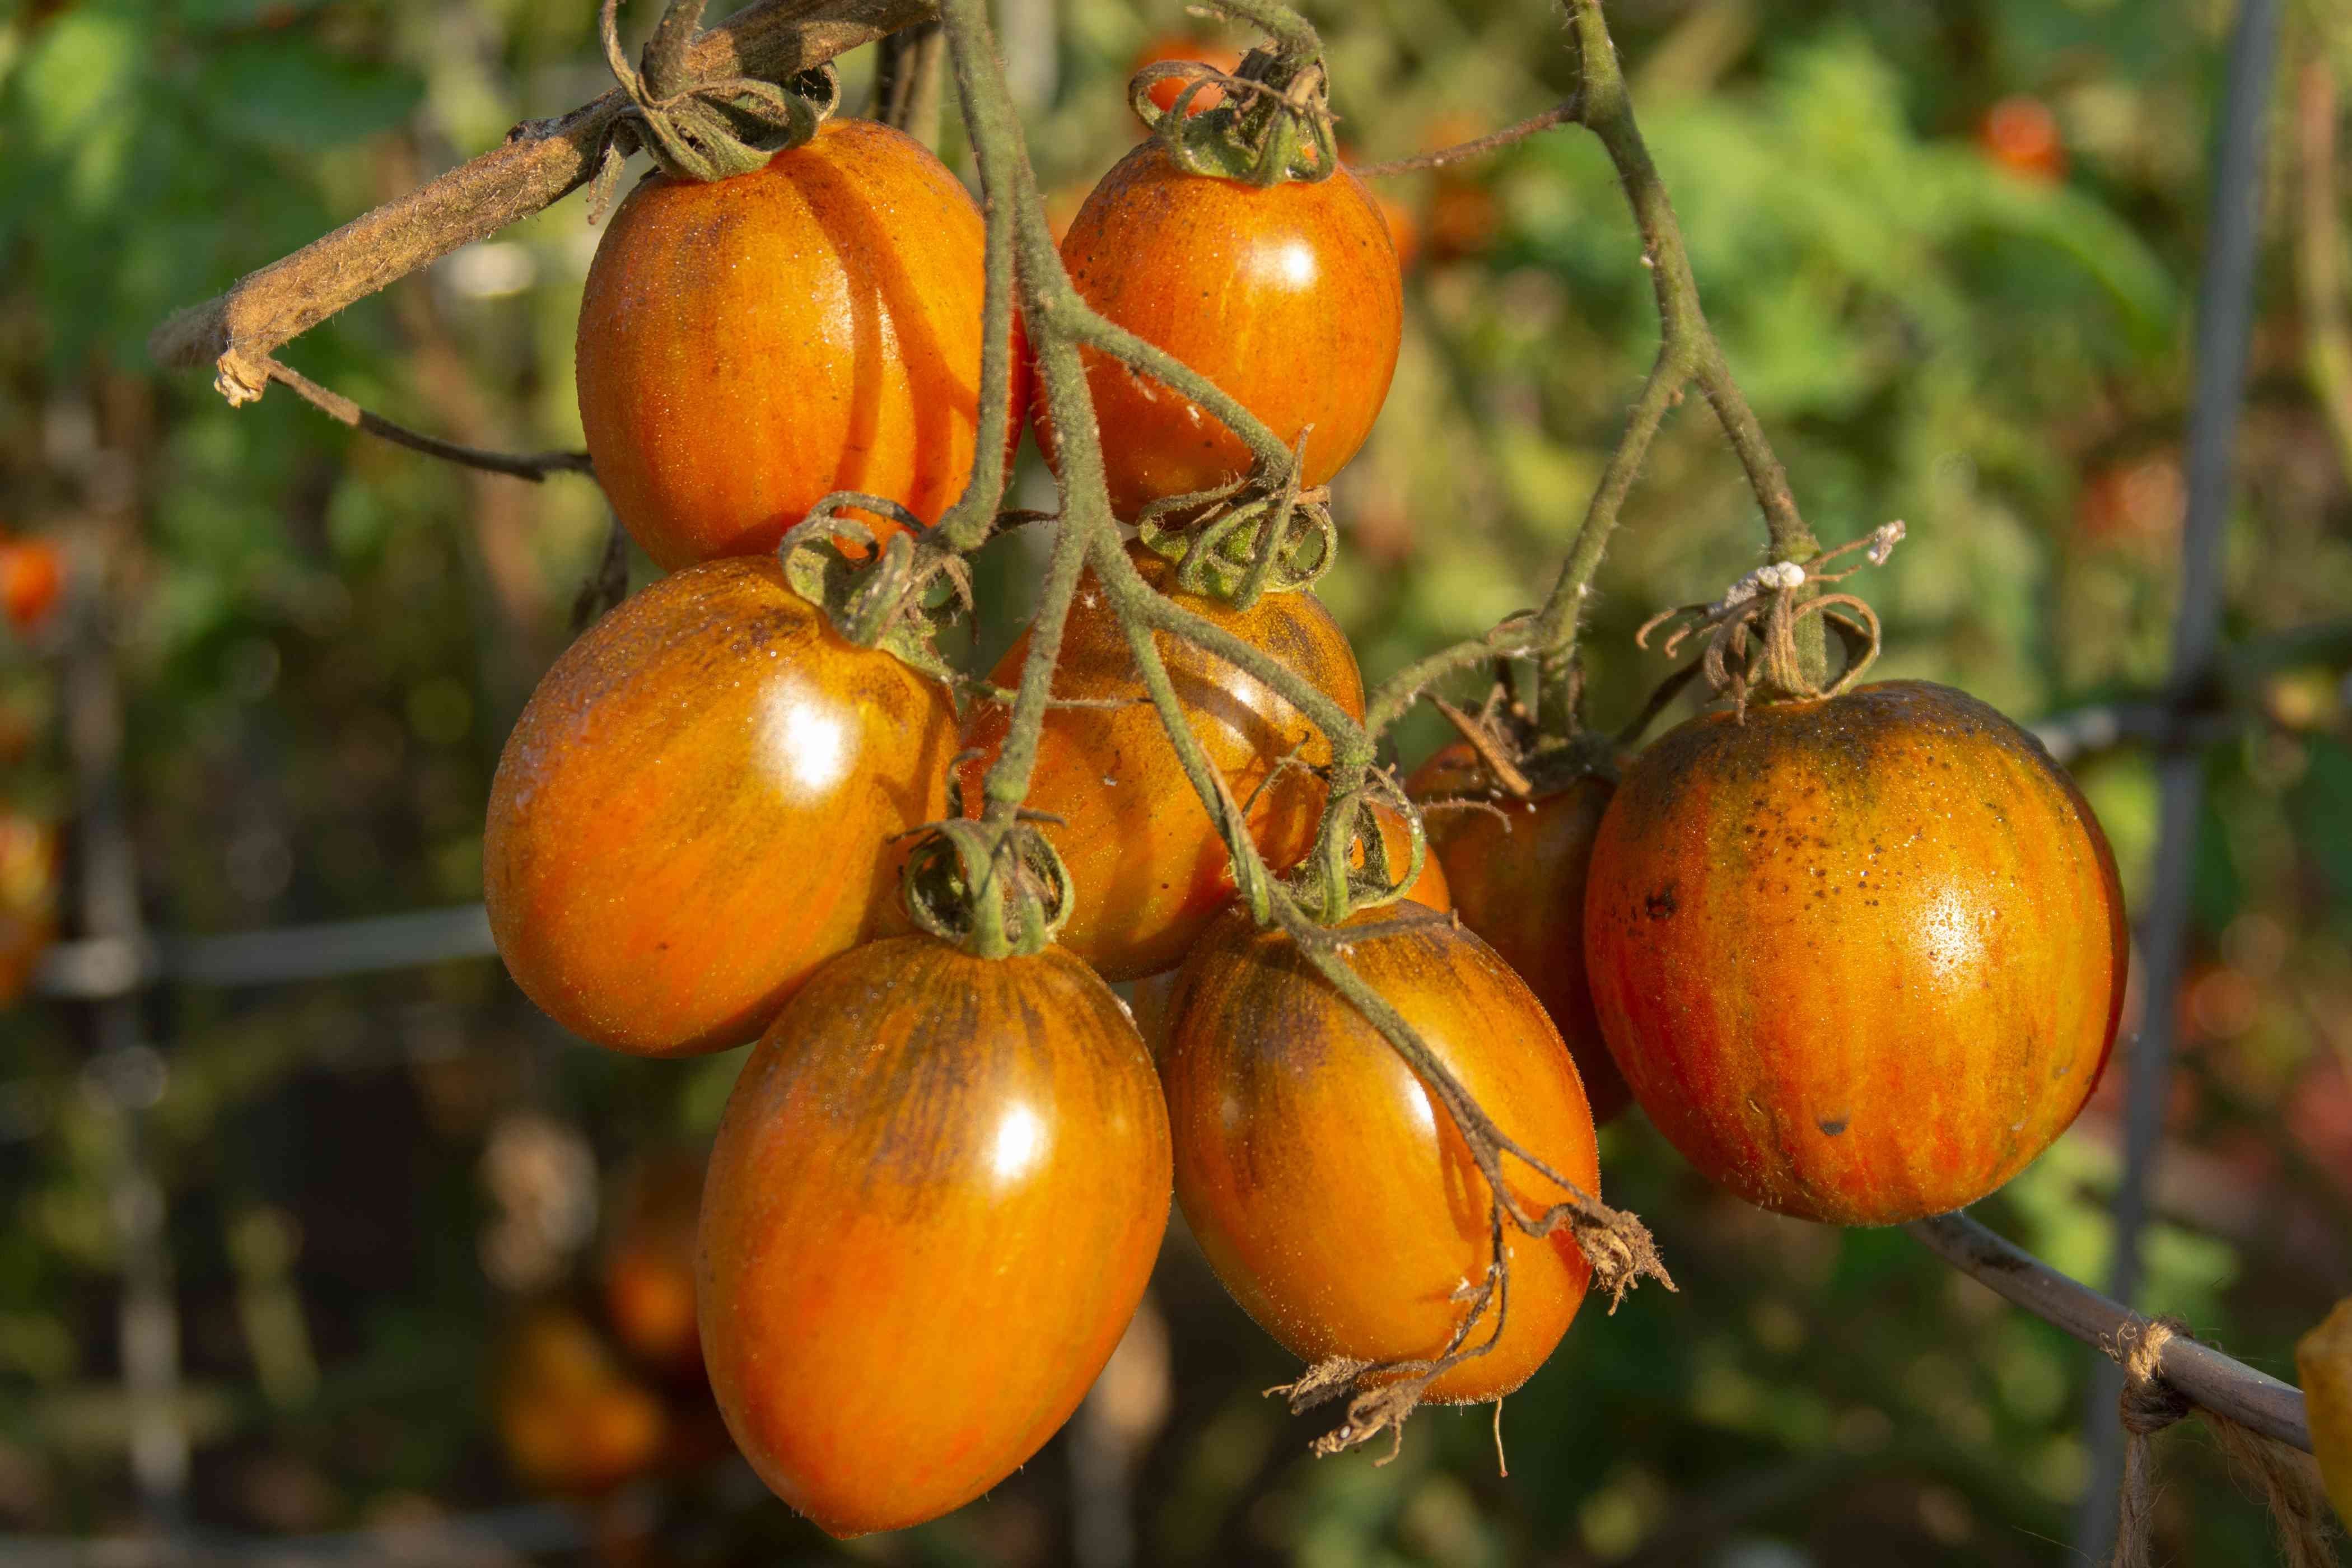 Orange-red tomatoes hanging on vine with bacterial speck